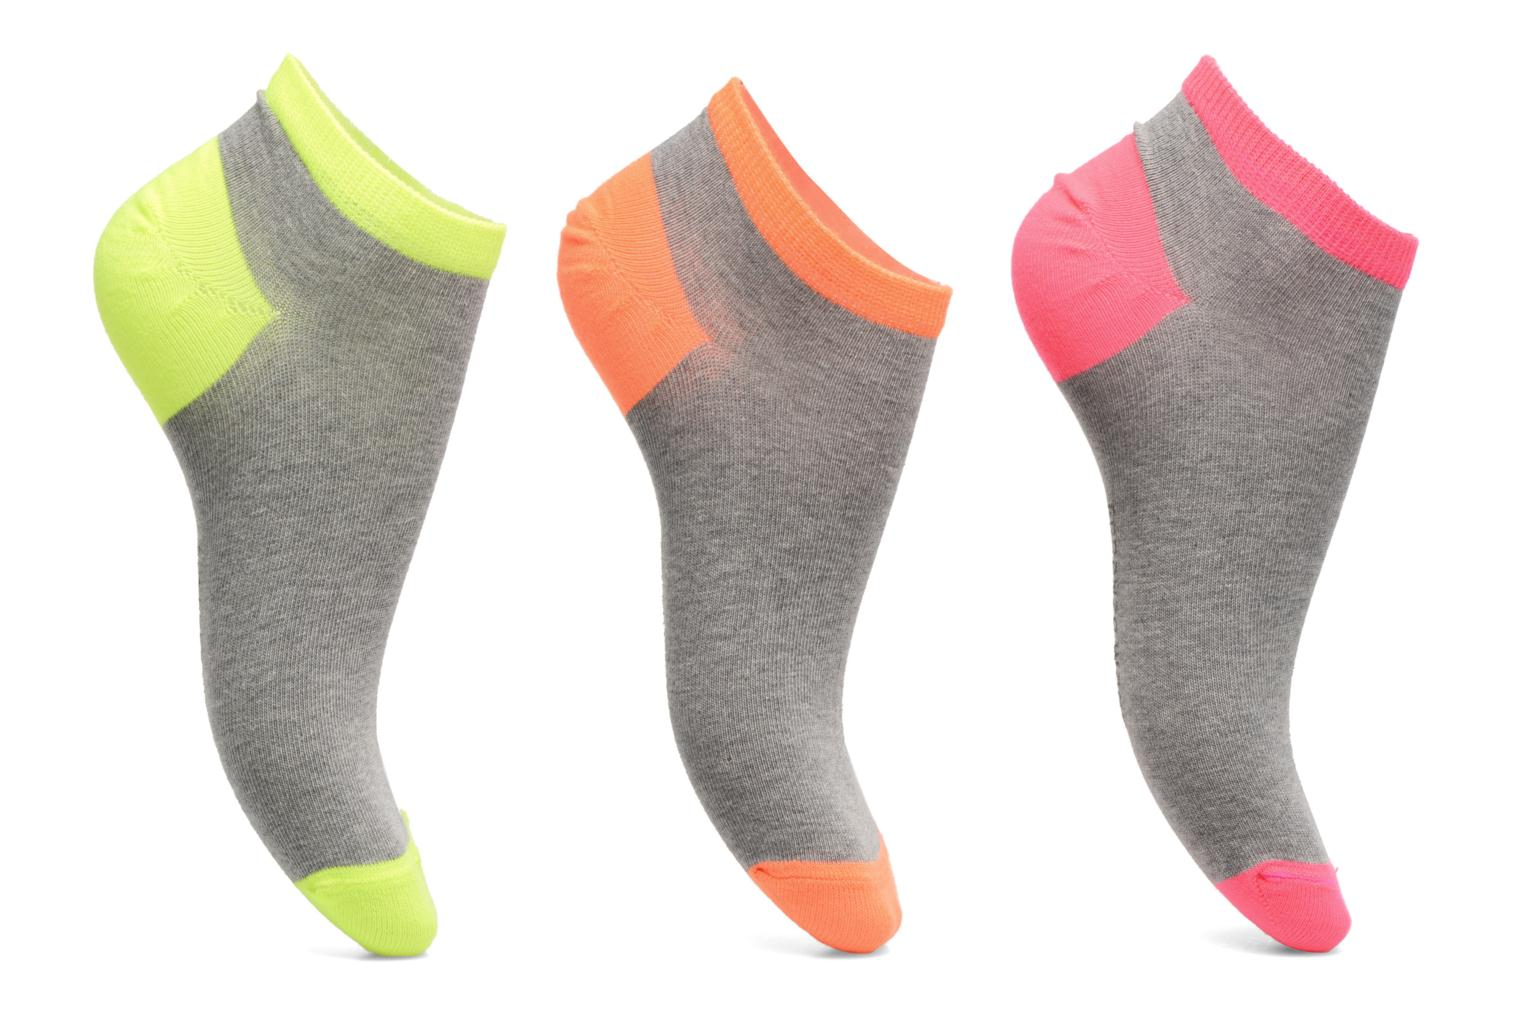 Socks & tights Sarenza Wear Chaussettes invisibles Femme fluo Pack de 3 Coton Grey detailed view/ Pair view